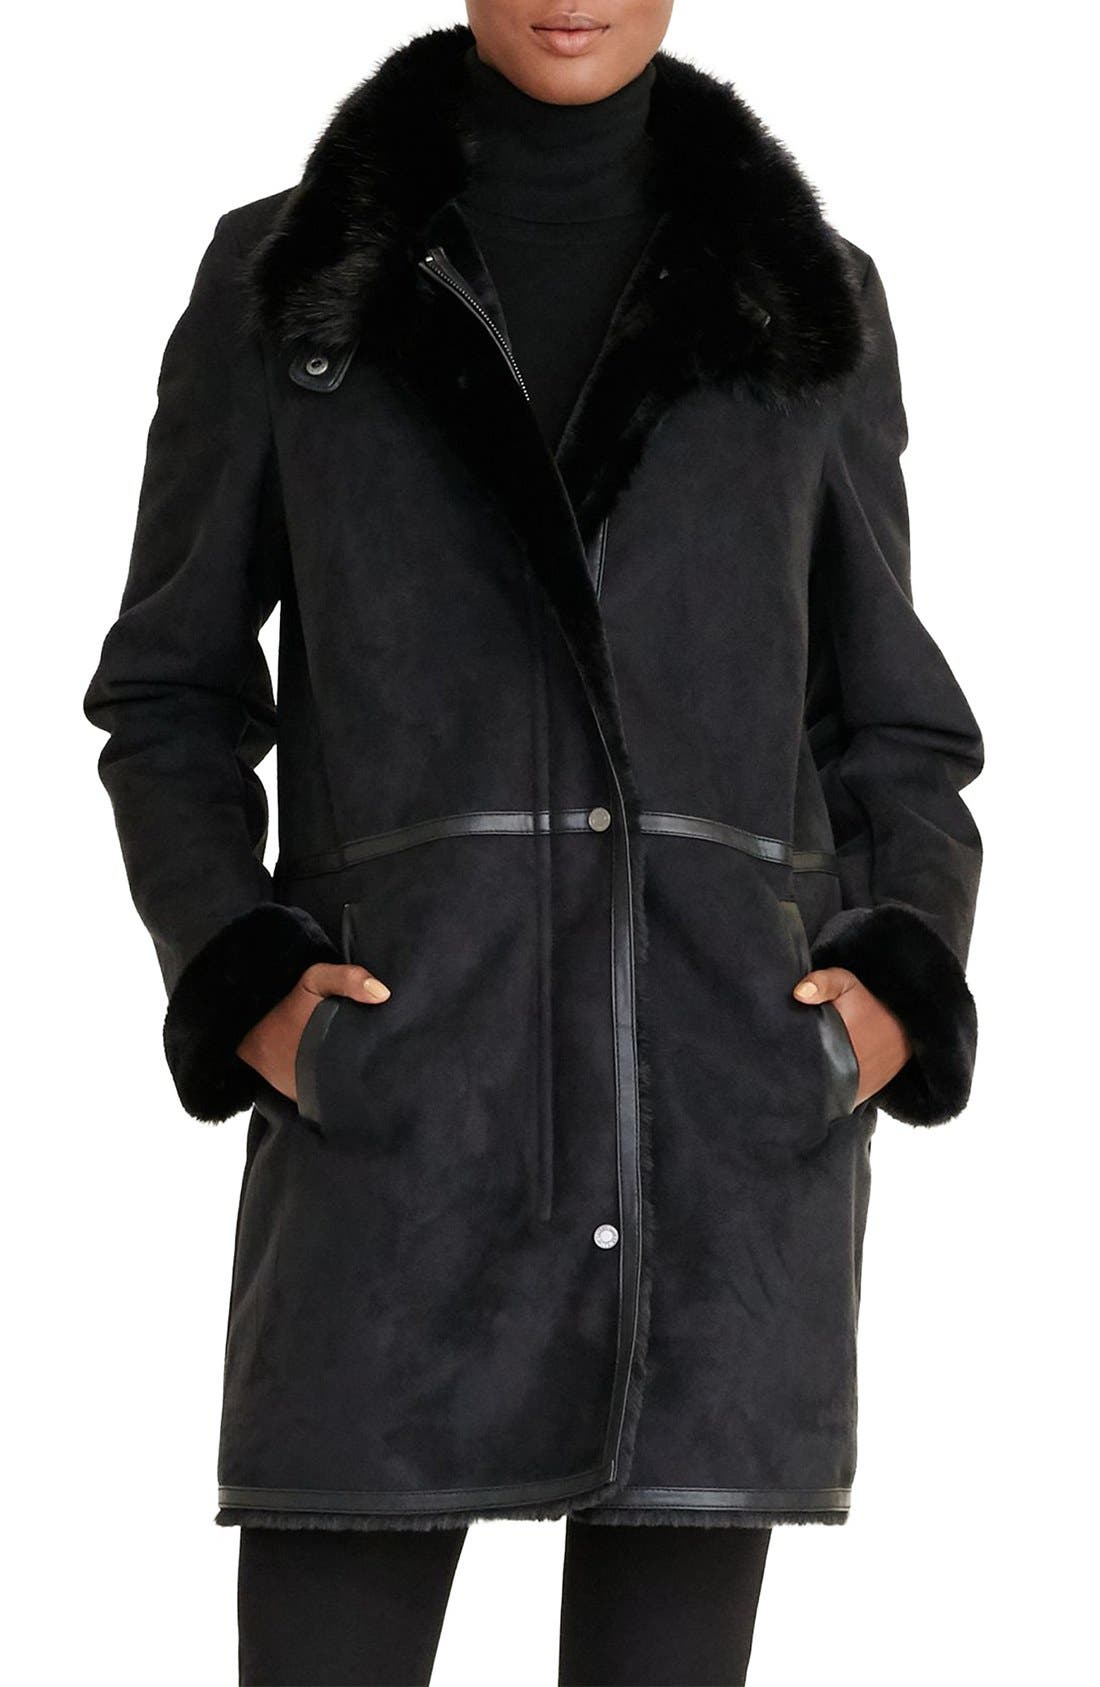 Alternate Image 1 Selected - Lauren Ralph Lauren Faux Shearling Coat